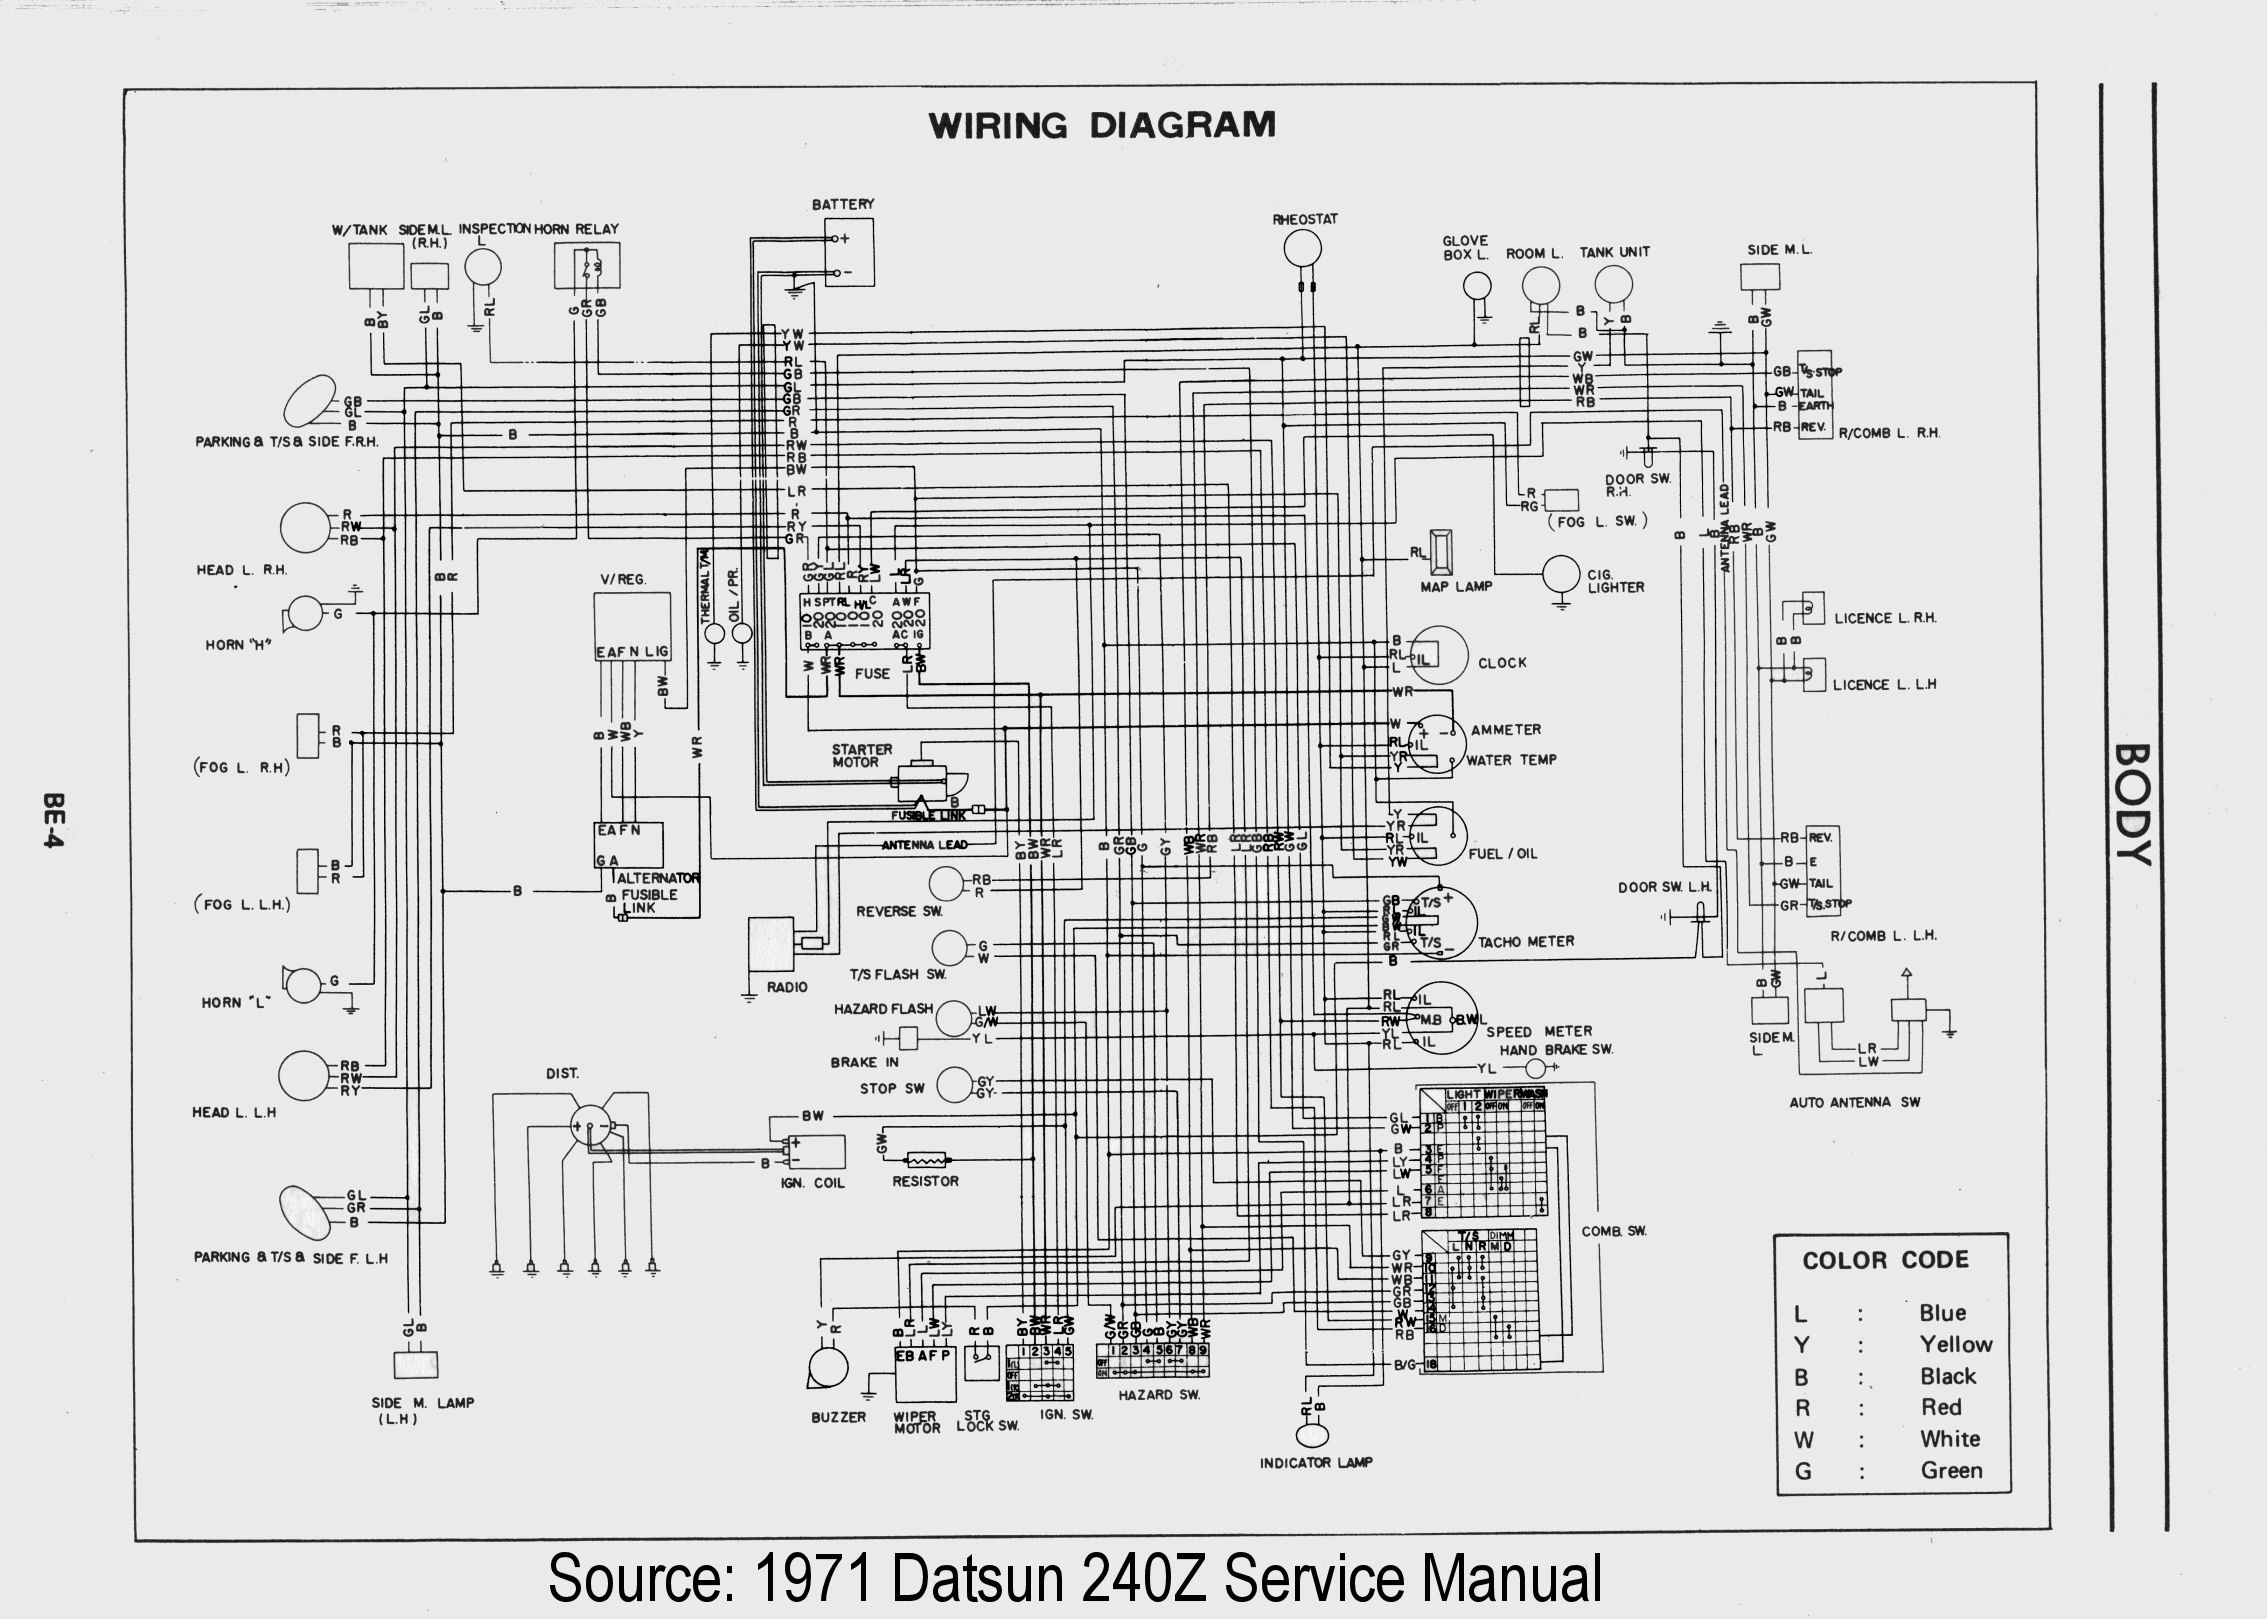 Wiring Diagram HiRes 2 generic wiring troubleshooting checklist woodworkerb 71 240Z Wiring -Diagram at pacquiaovsvargaslive.co